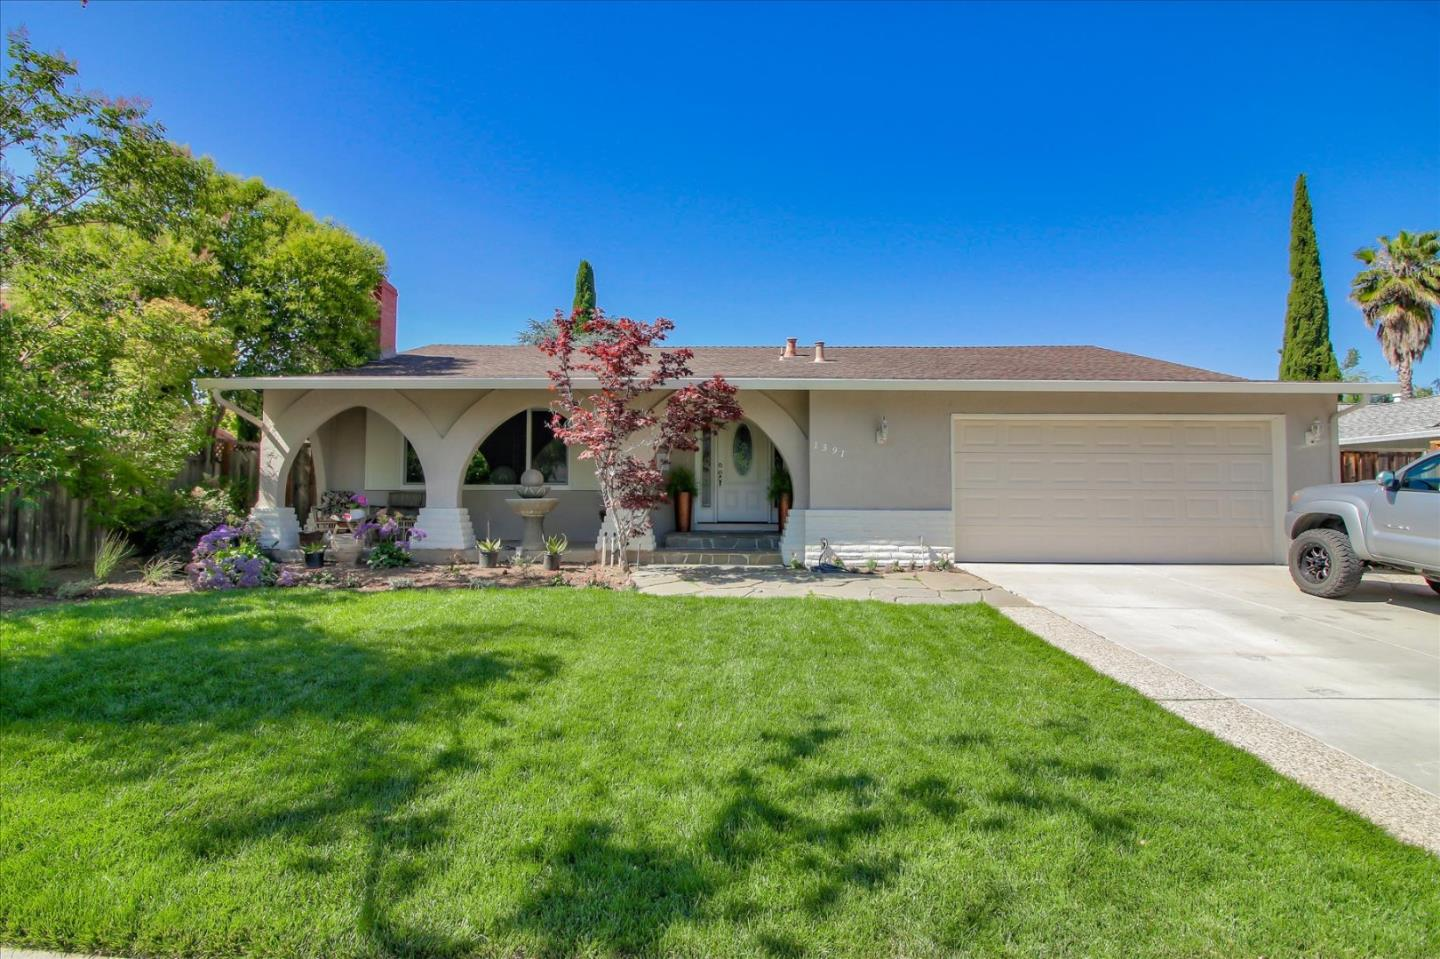 VIRTUAL OPEN HOUSE  5/28 - 6/1  2-4 pm https://zoom.us/j/5369151825 Enjoy this lovely & prestigious neighborhood in Almaden Vly  San Jose  mins walk to shops & Los Alamitos School, close to Quicksilver Newer remodeled home on spacious lot 9186 sq ft ,3 bedrooms plus  extra rm, 2 full baths with 1673 sq. ft. area home., easy access to hwy 85, to commute  to Silicon Valley business area..Well designed floor plan offers  view of the mountain from the vaulted ceiling living rm, newer remodeled kitchen granite counter top, ceramic back splash, adding high end Kitchen Aid appliances, double pane  windows,, master bath with  glazed tiles and frame less shower doors, laminate wood flooring , crown molding, 5 in wide base boards,interior and exterior paint, and more! Beyond the patio deck is a lush backyard, where the sparkling newer plastered pool, to entertain, relax and enjoy outdoor after a stressful day from work. .Extra room for your office,children playroom. A Pride of Ownership!